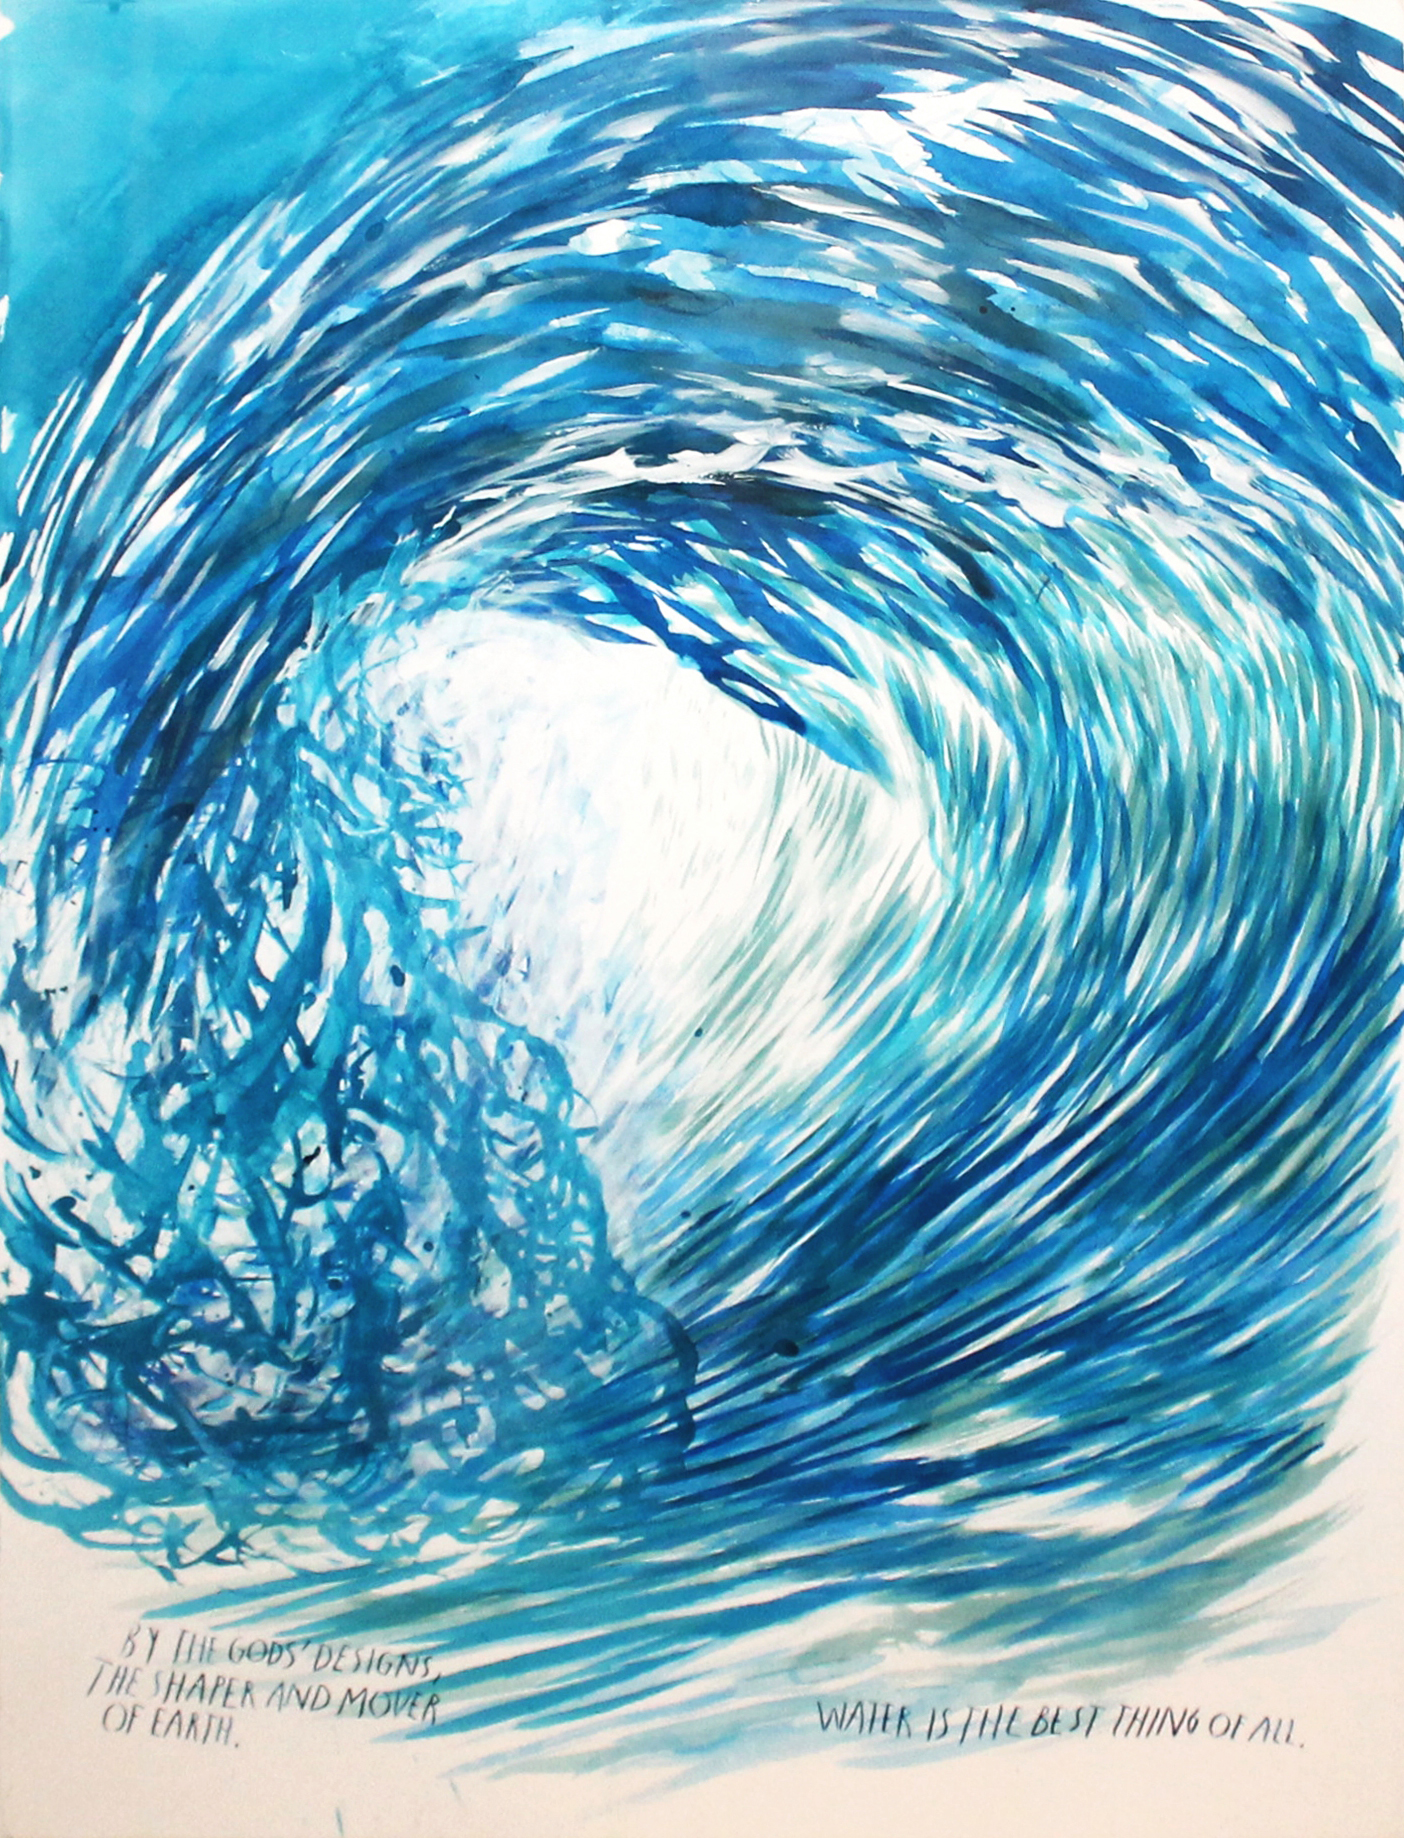 Raymond Pettibon, Untitled (Water Is the Best Thing of All)